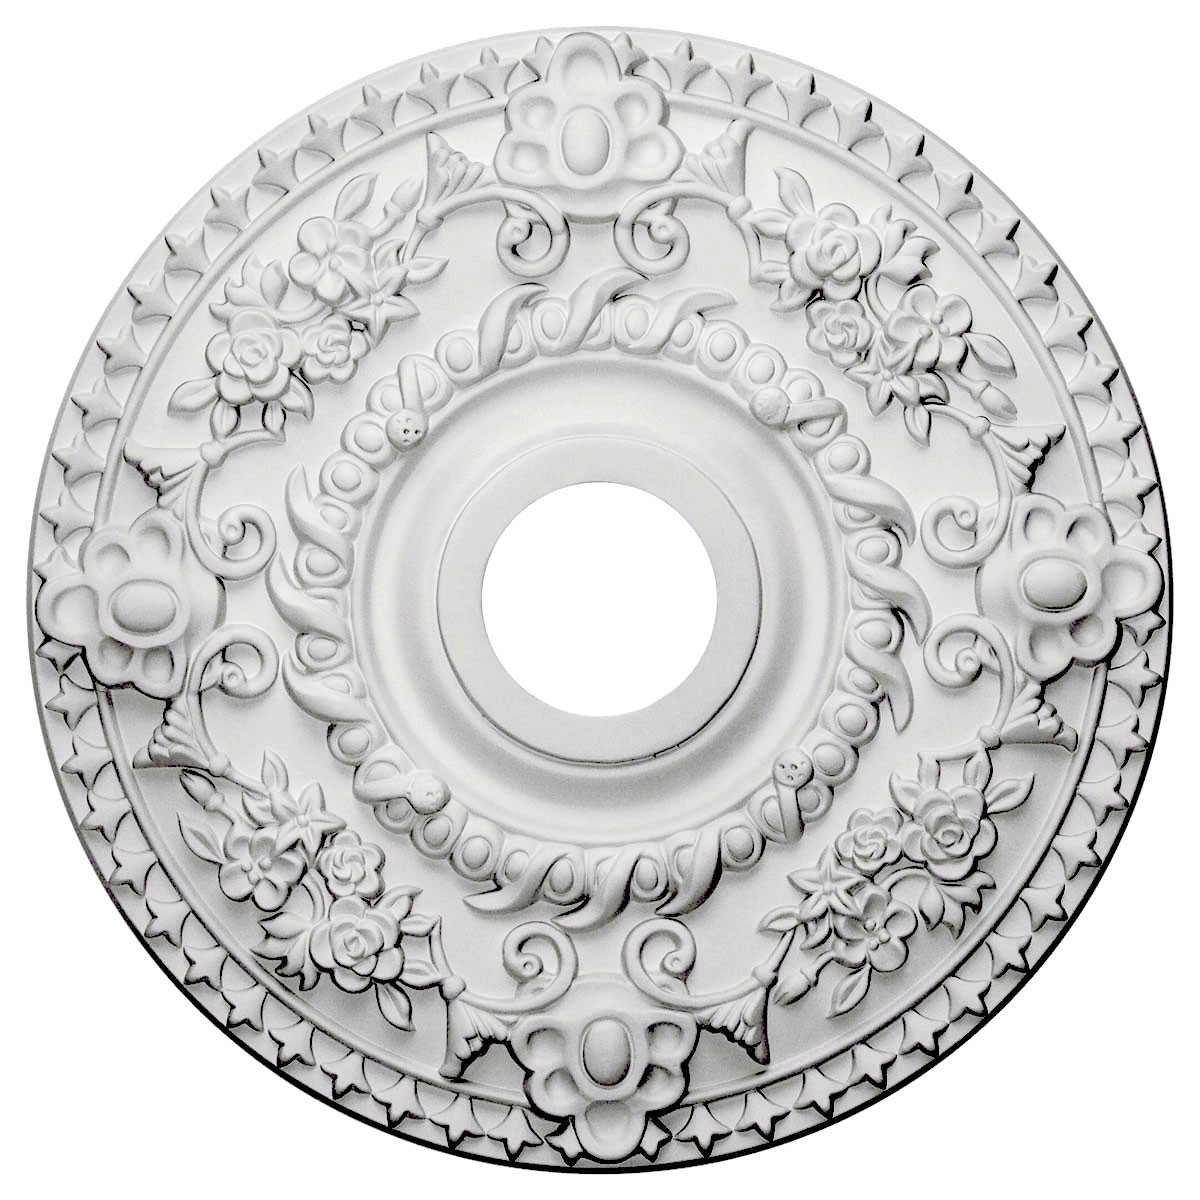 "EM-CM18RO - 18""OD x 3 1/2""ID x 1 1/2""P Rose Ceiling Medallion (Fits Canopies up to 7 1/4"")"